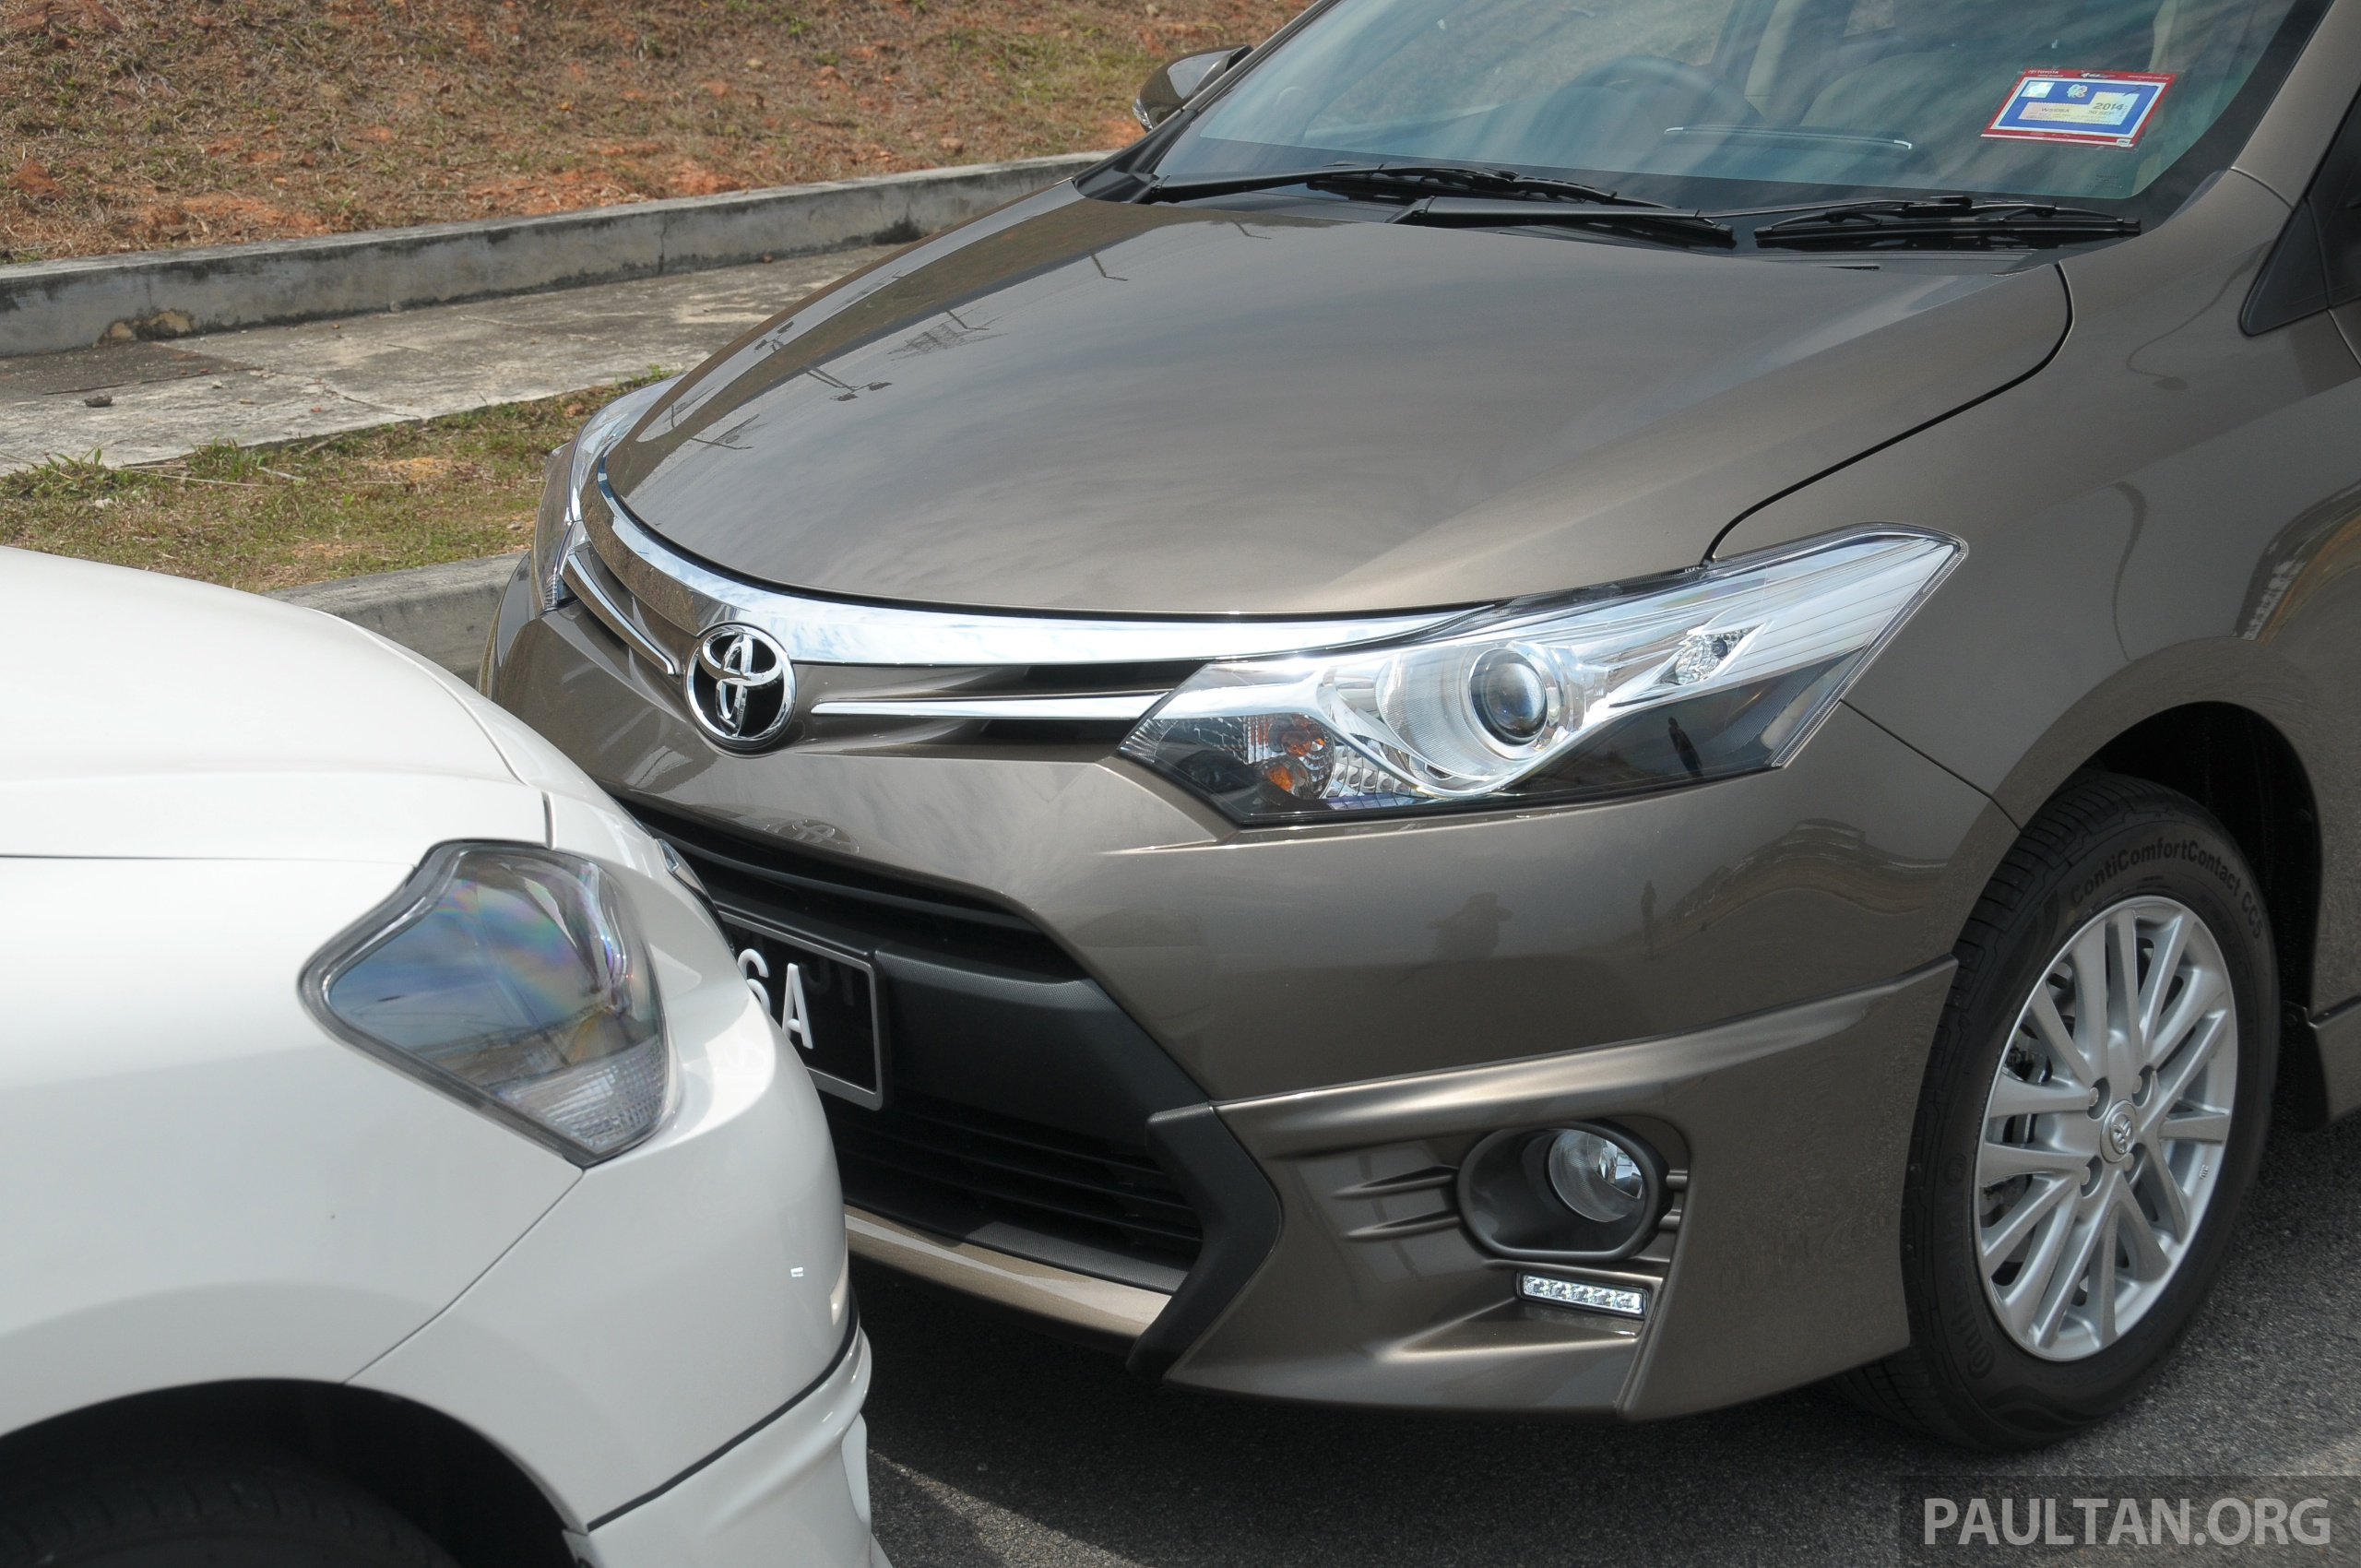 GALLERY: 2012 and 2013 Toyota Vios, side by side